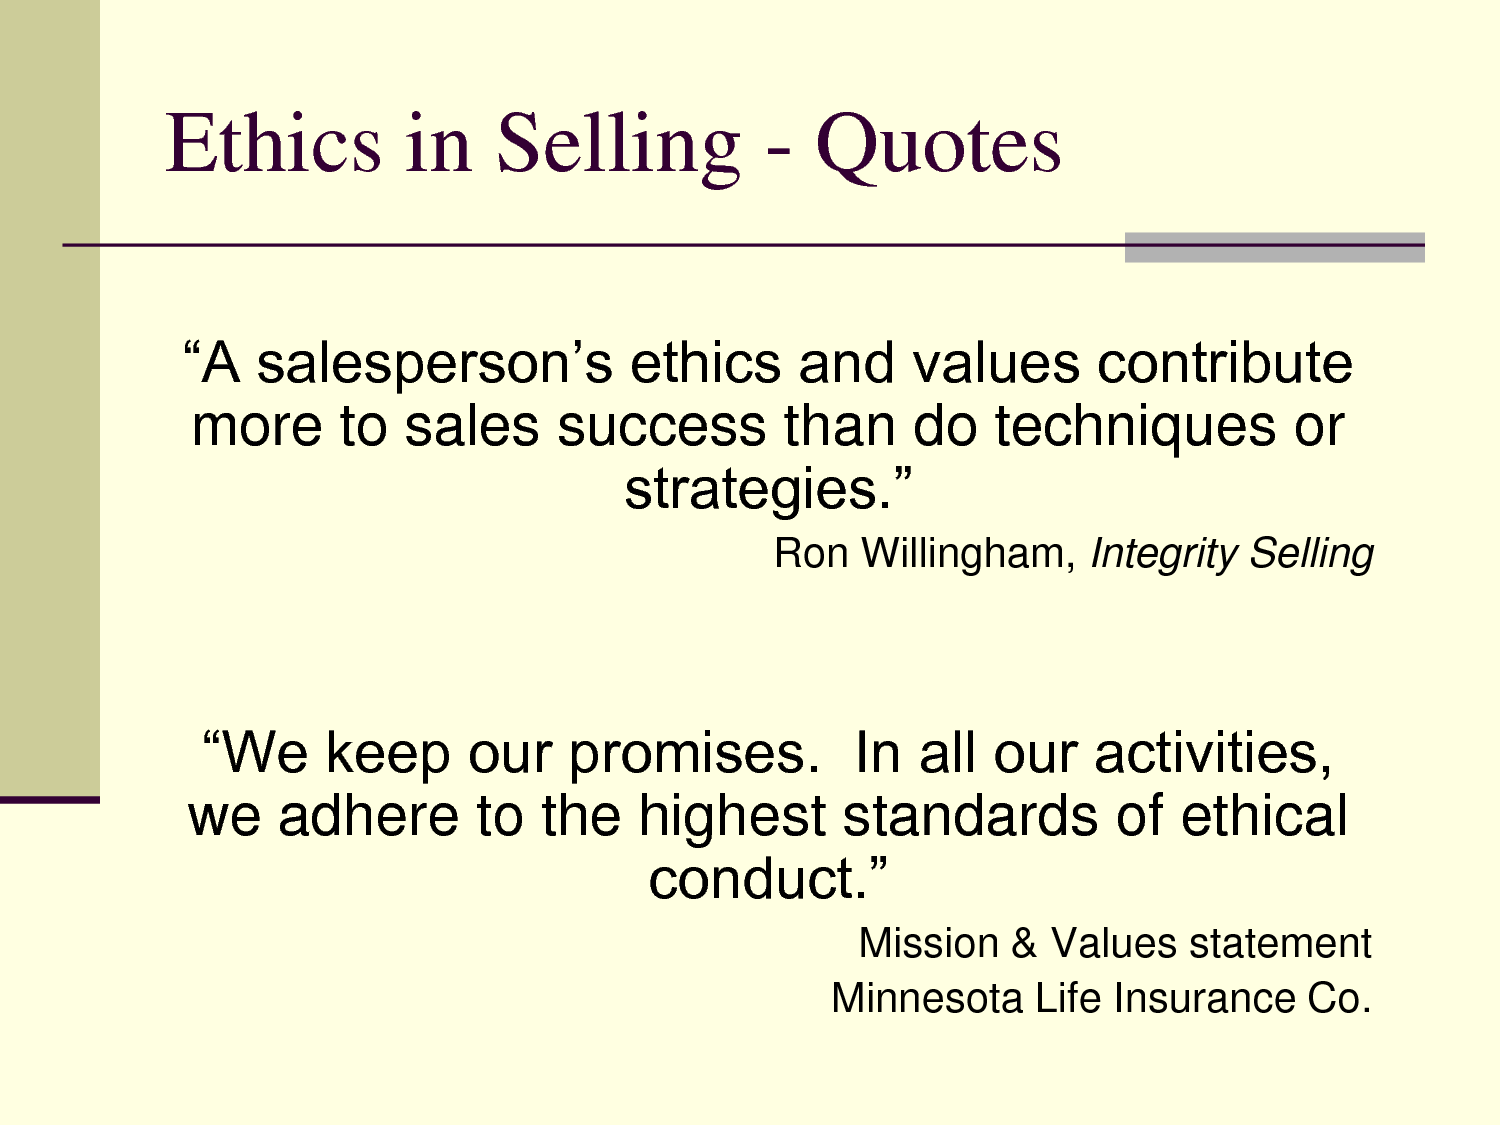 Selling quote #1